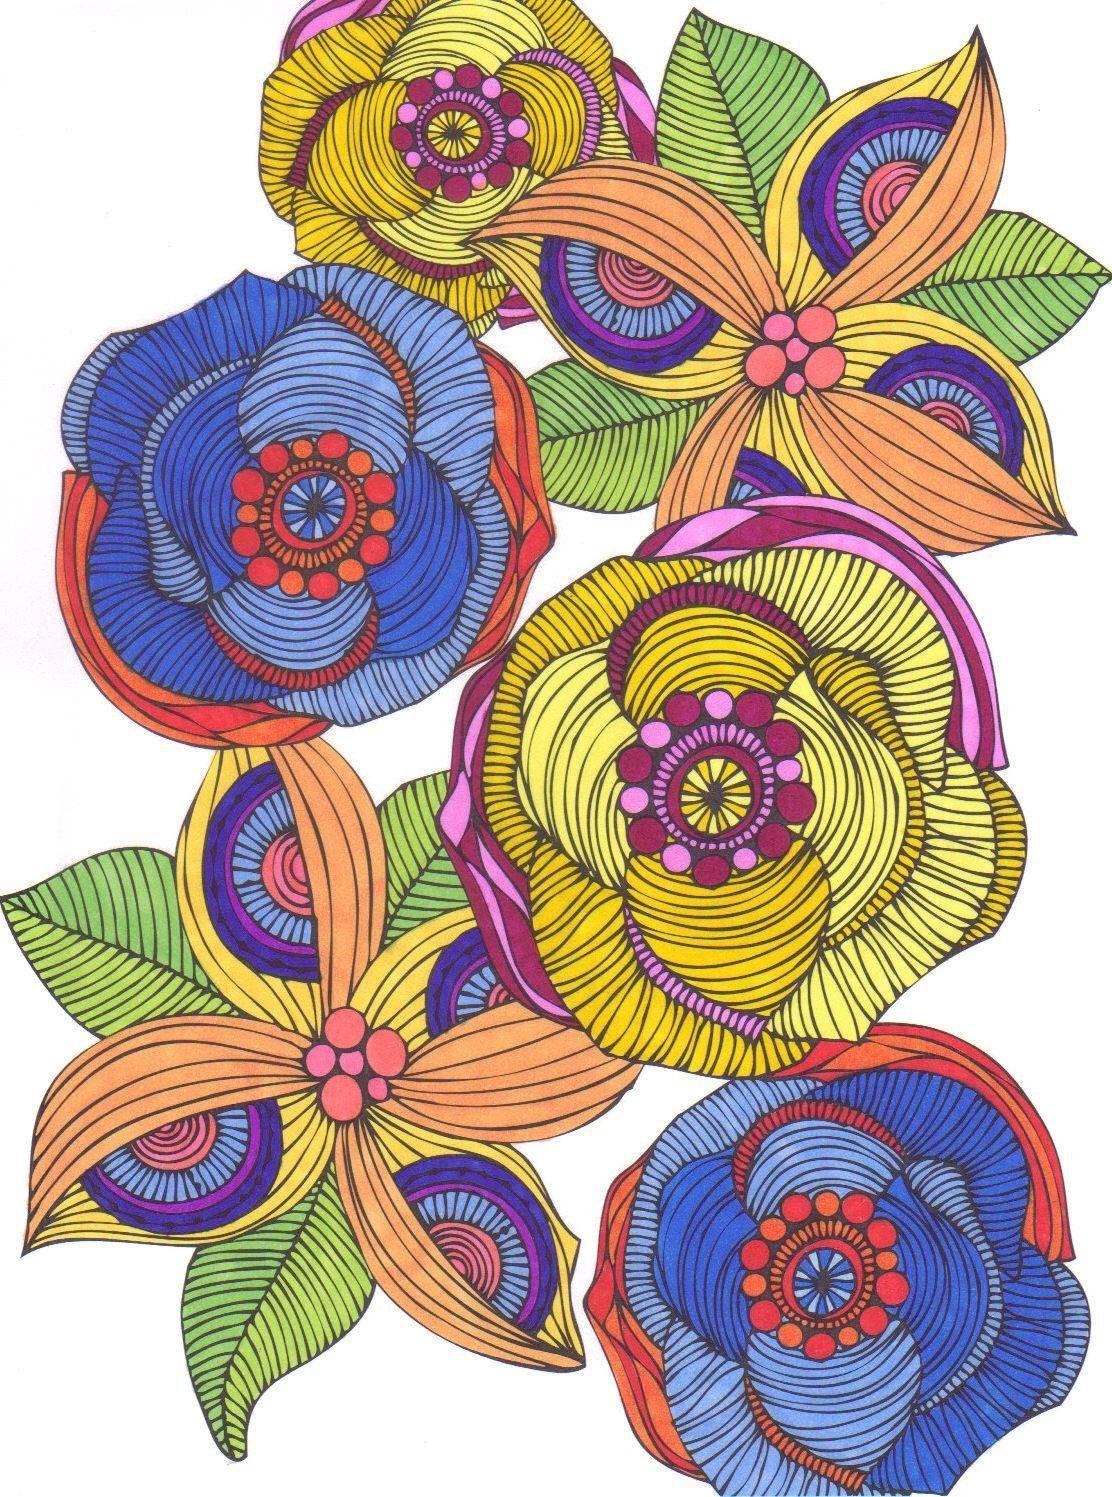 Coloring art activities - Art Creative Coloring Flowers Art Activity